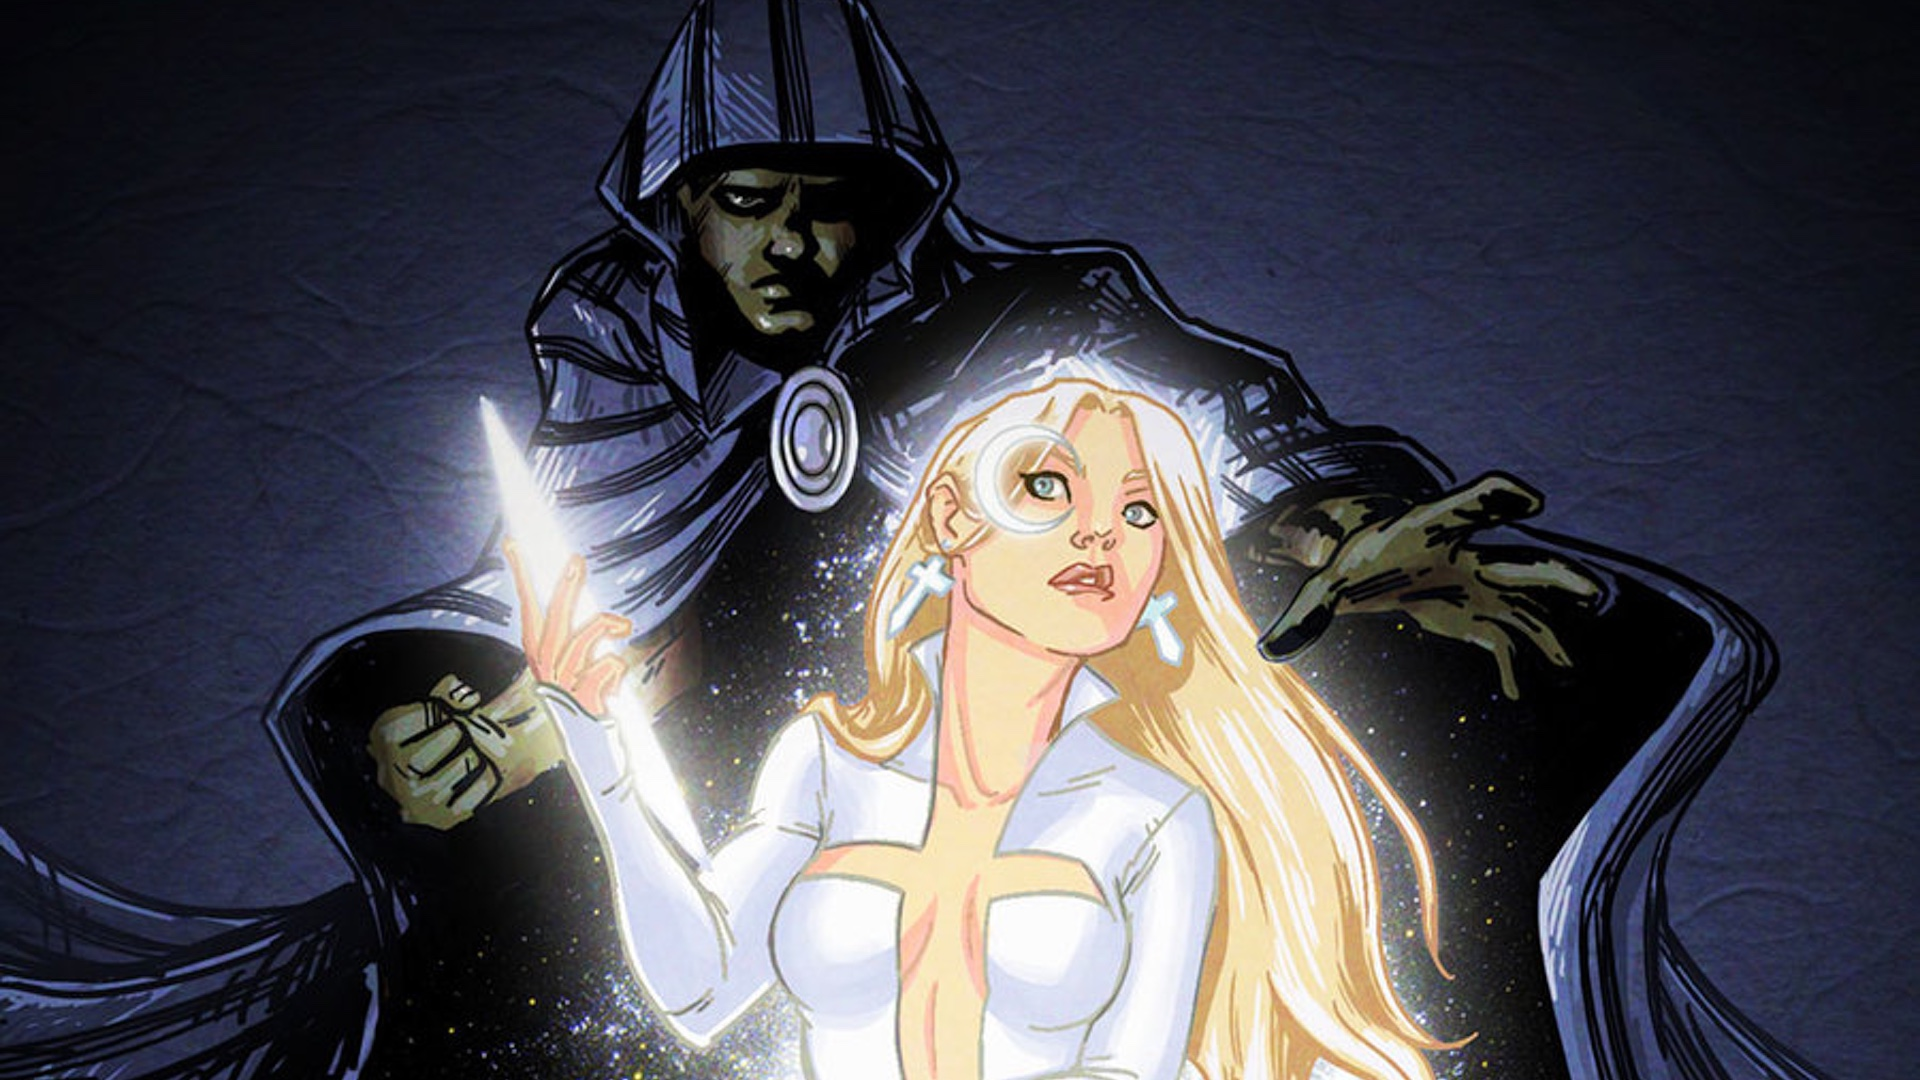 Marvels Cloak And Dagger Series Gets An Official Synopsis Geektyrant